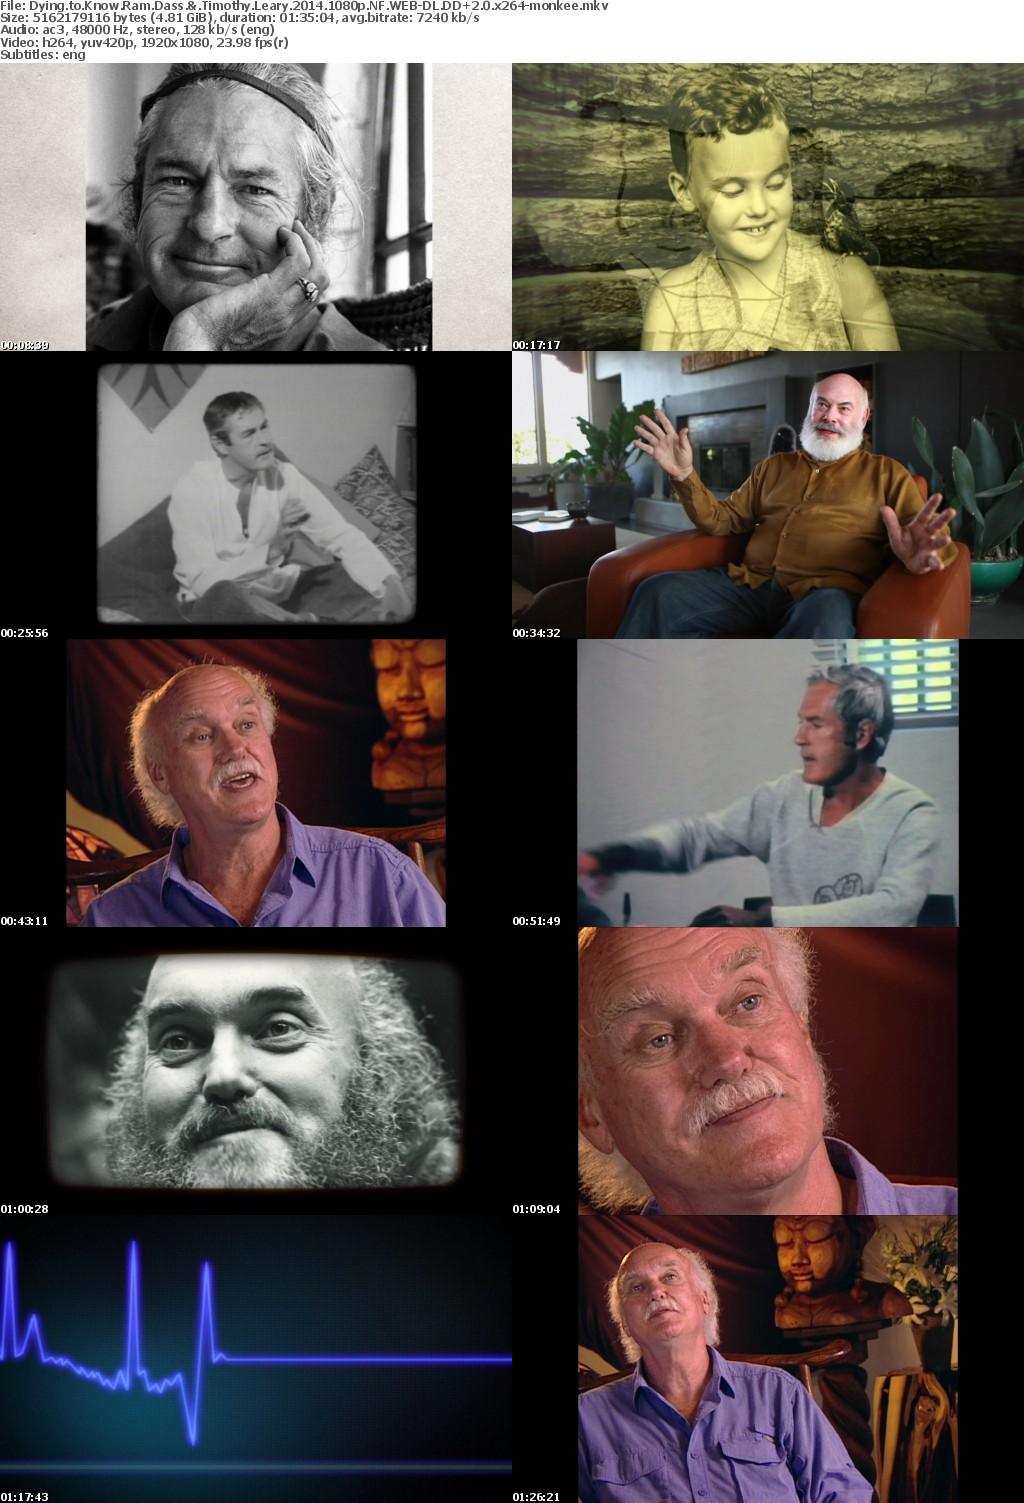 Dying to Know Ram Dass Timothy Leary 2014 1080p LSD GOD